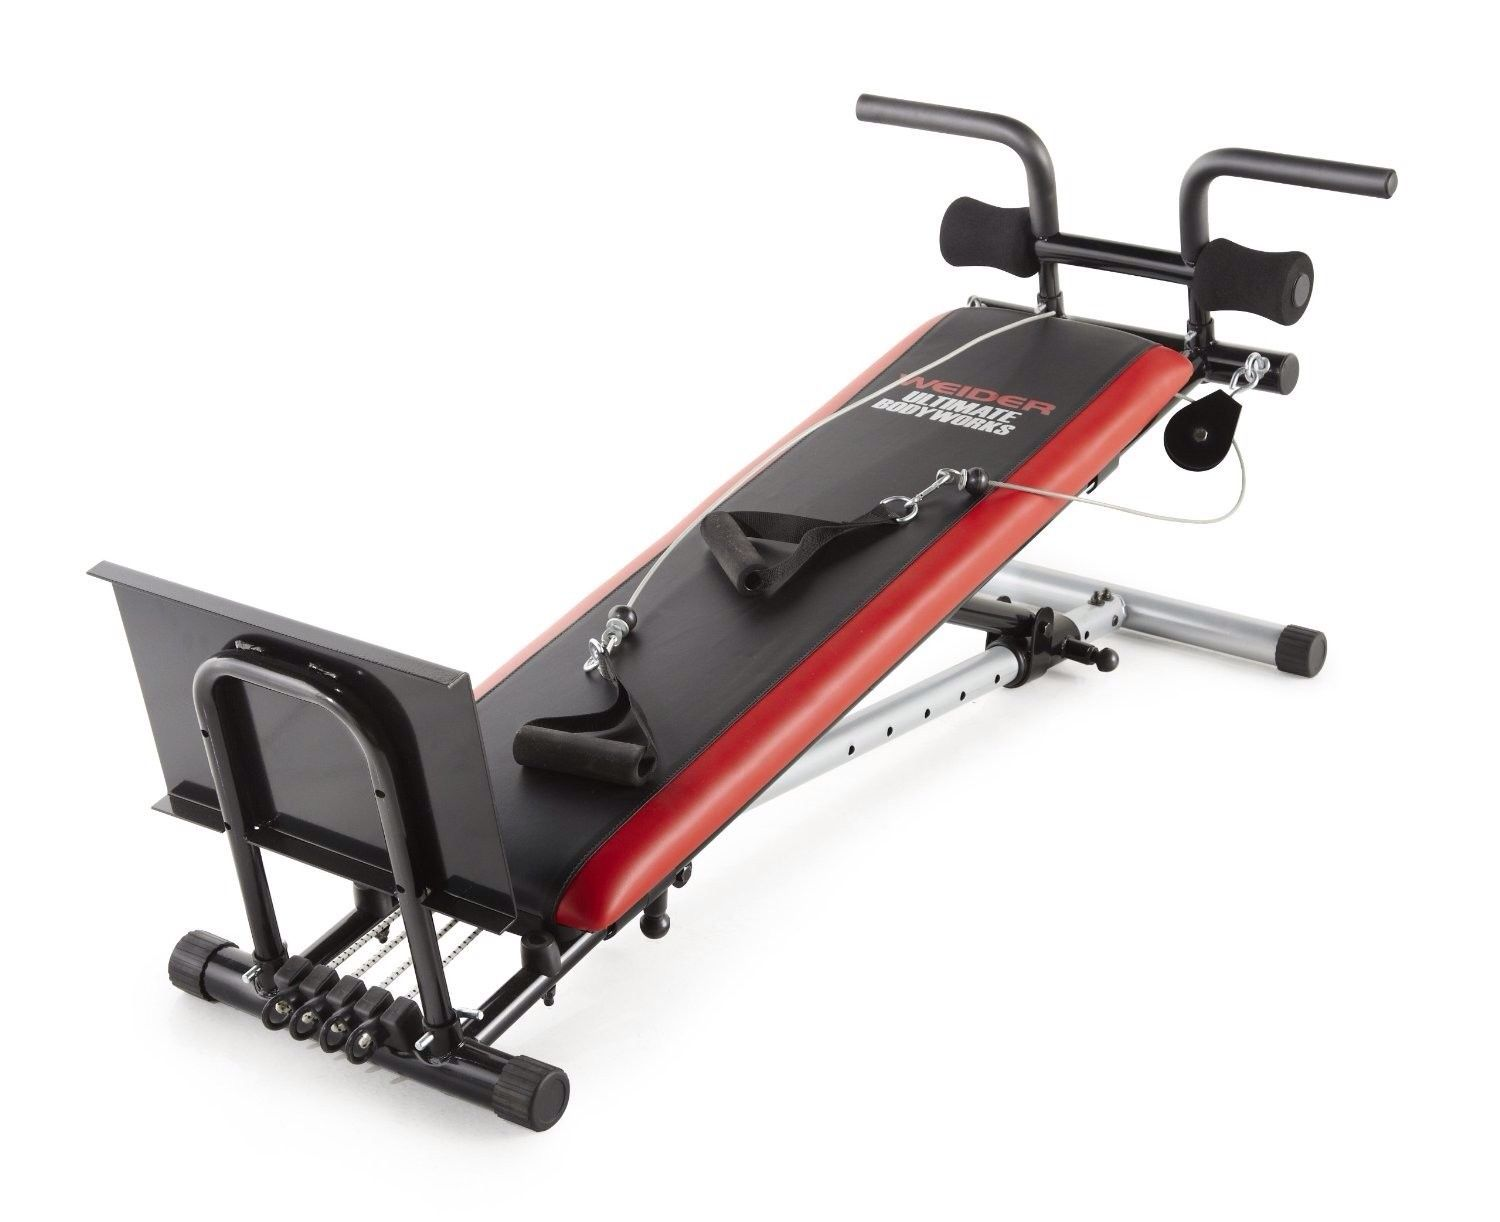 Weiderultimatebodyworksadjustableinclinebench Gym Weights Fitness Sports Health Exercise Exerciseequip Weider Ultimate Body Works At Home Gym Total Gym